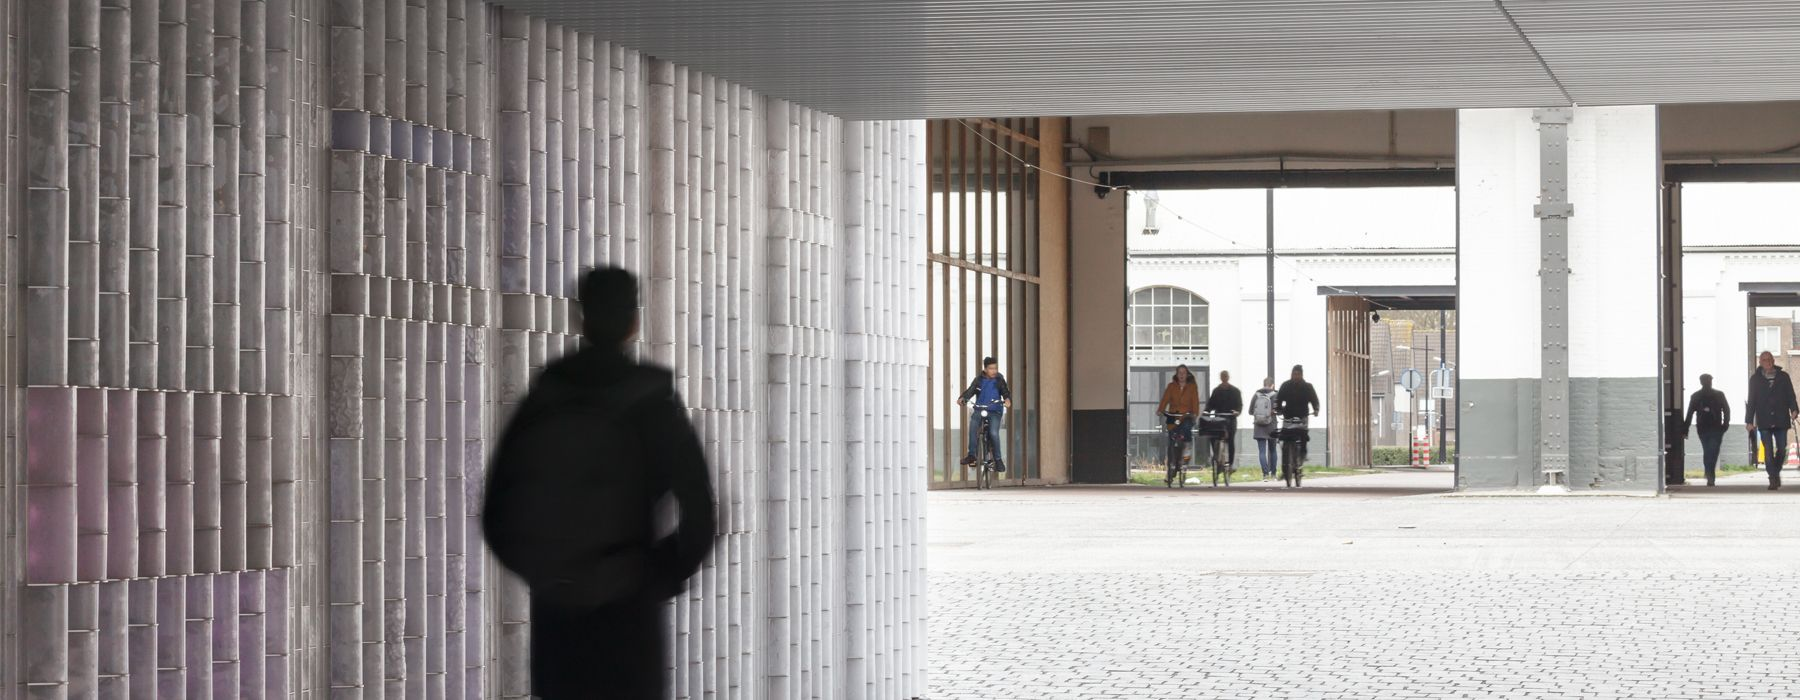 civic architects + BRIGHT revive railway underpass in tilburg, the netherlands